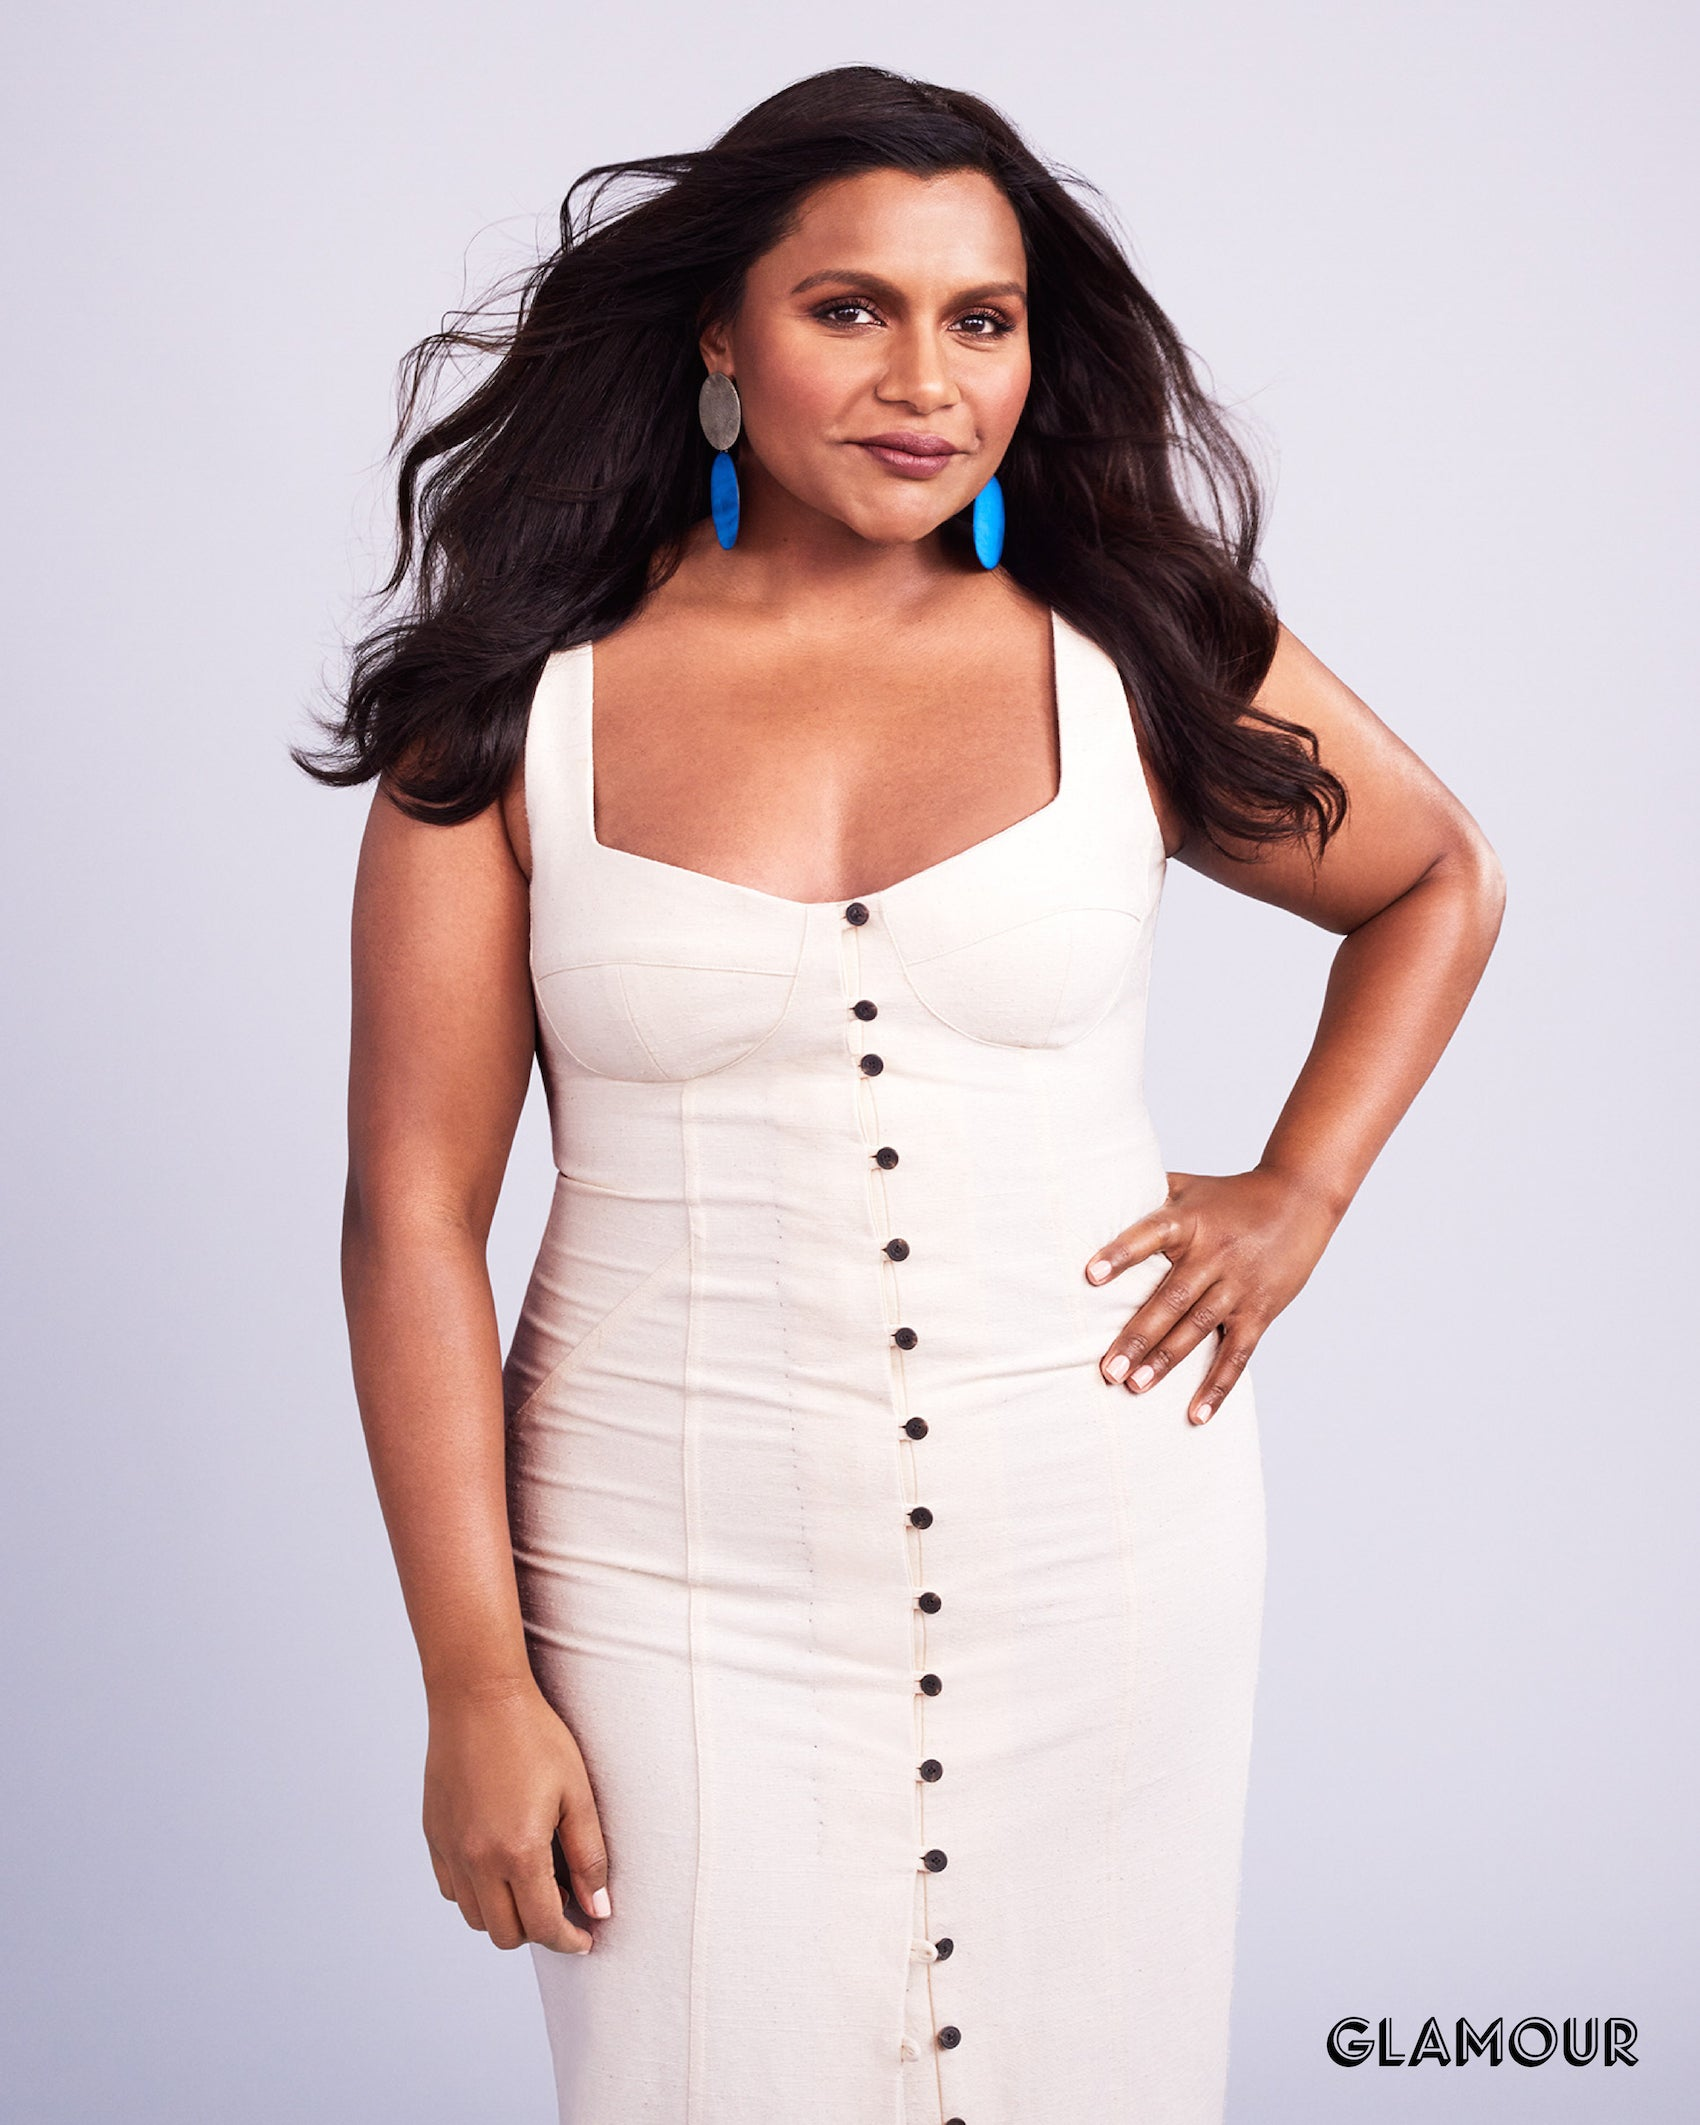 Mindy Kaling for Glamour